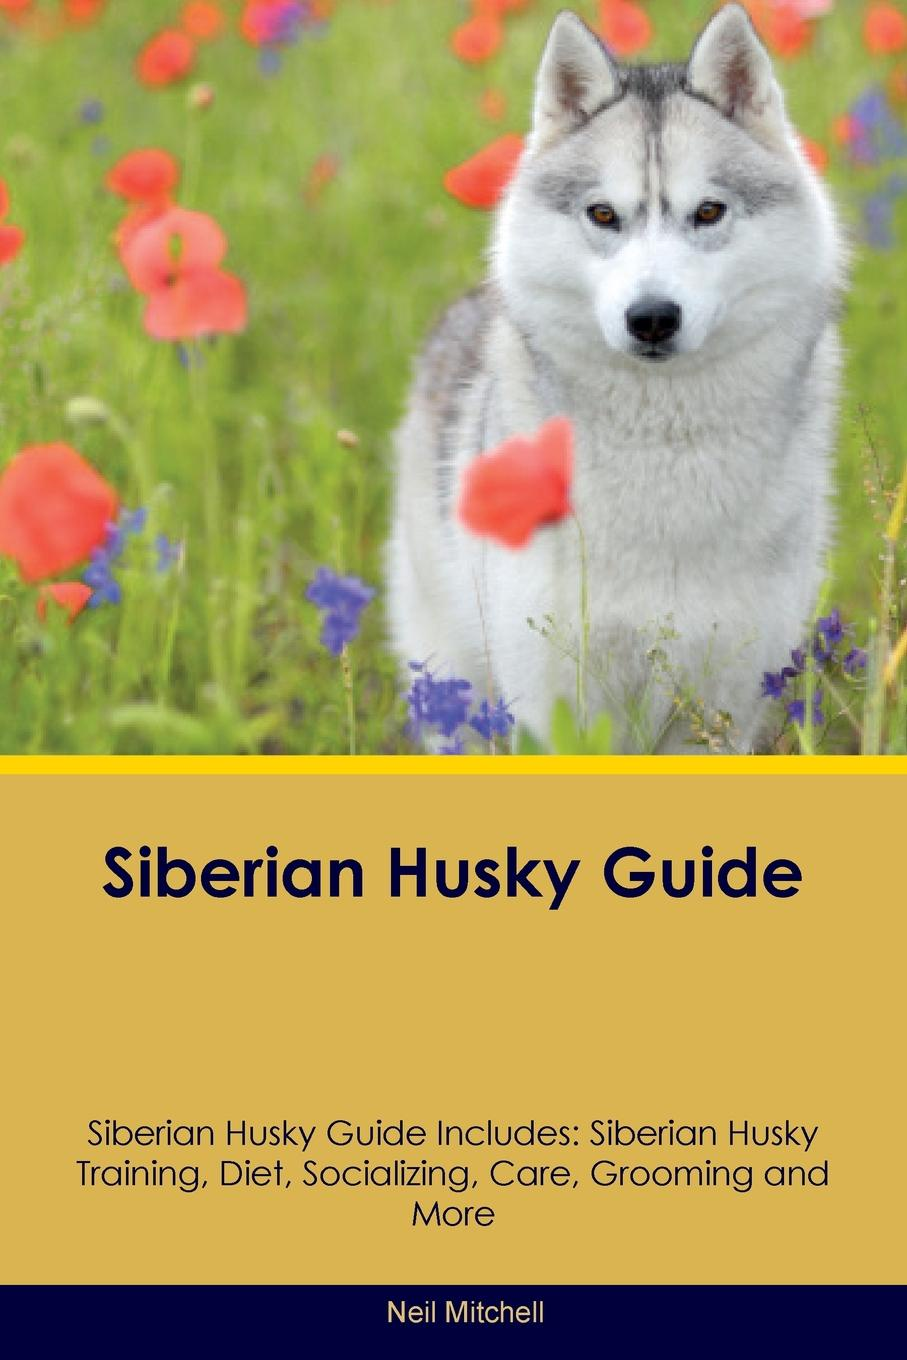 Neil Mitchell Siberian Husky Guide Siberian Husky Guide Includes. Siberian Husky Training, Diet, Socializing, Care, Grooming, Breeding and More guide to the great siberian railway